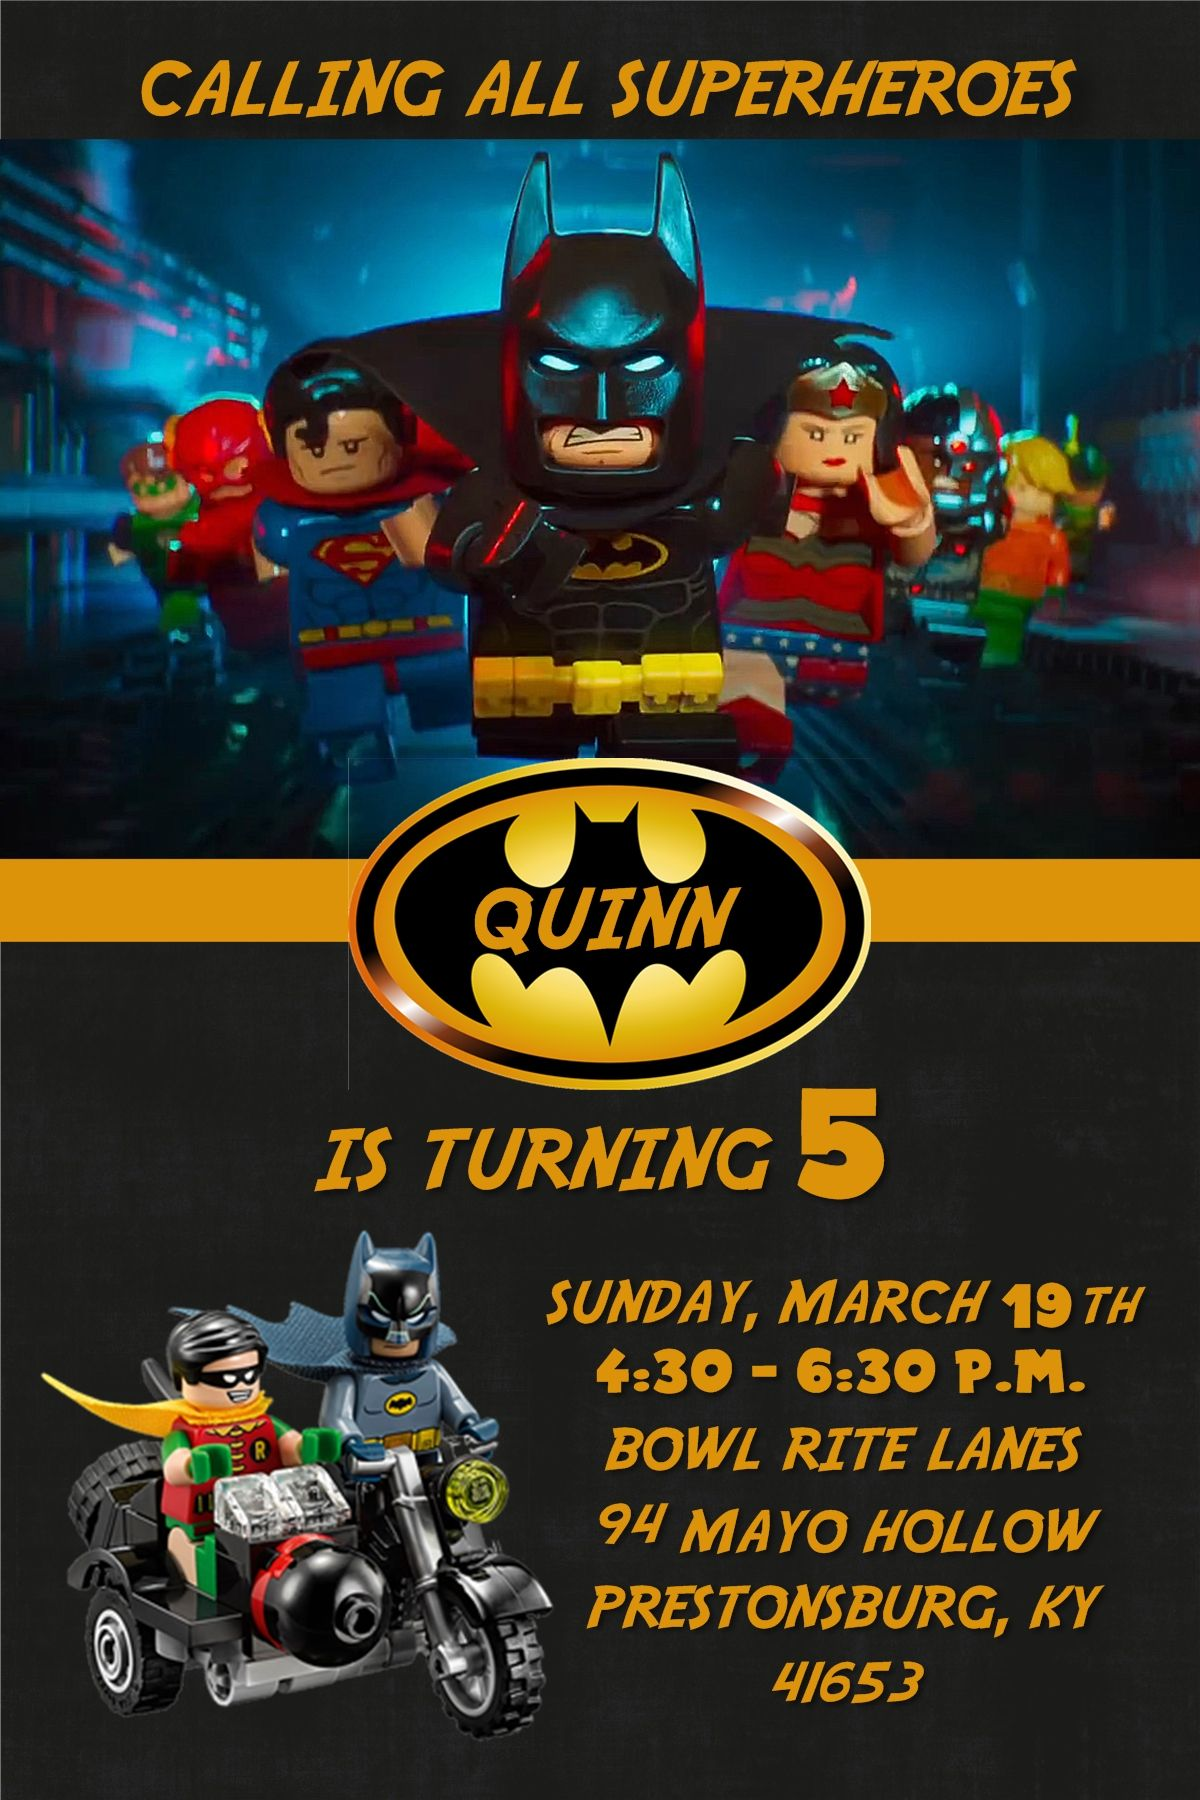 Lego batman birthday invitation contact me via email at lego batman birthday invitation contact me via email at aswiney01yahoo or stopboris Gallery